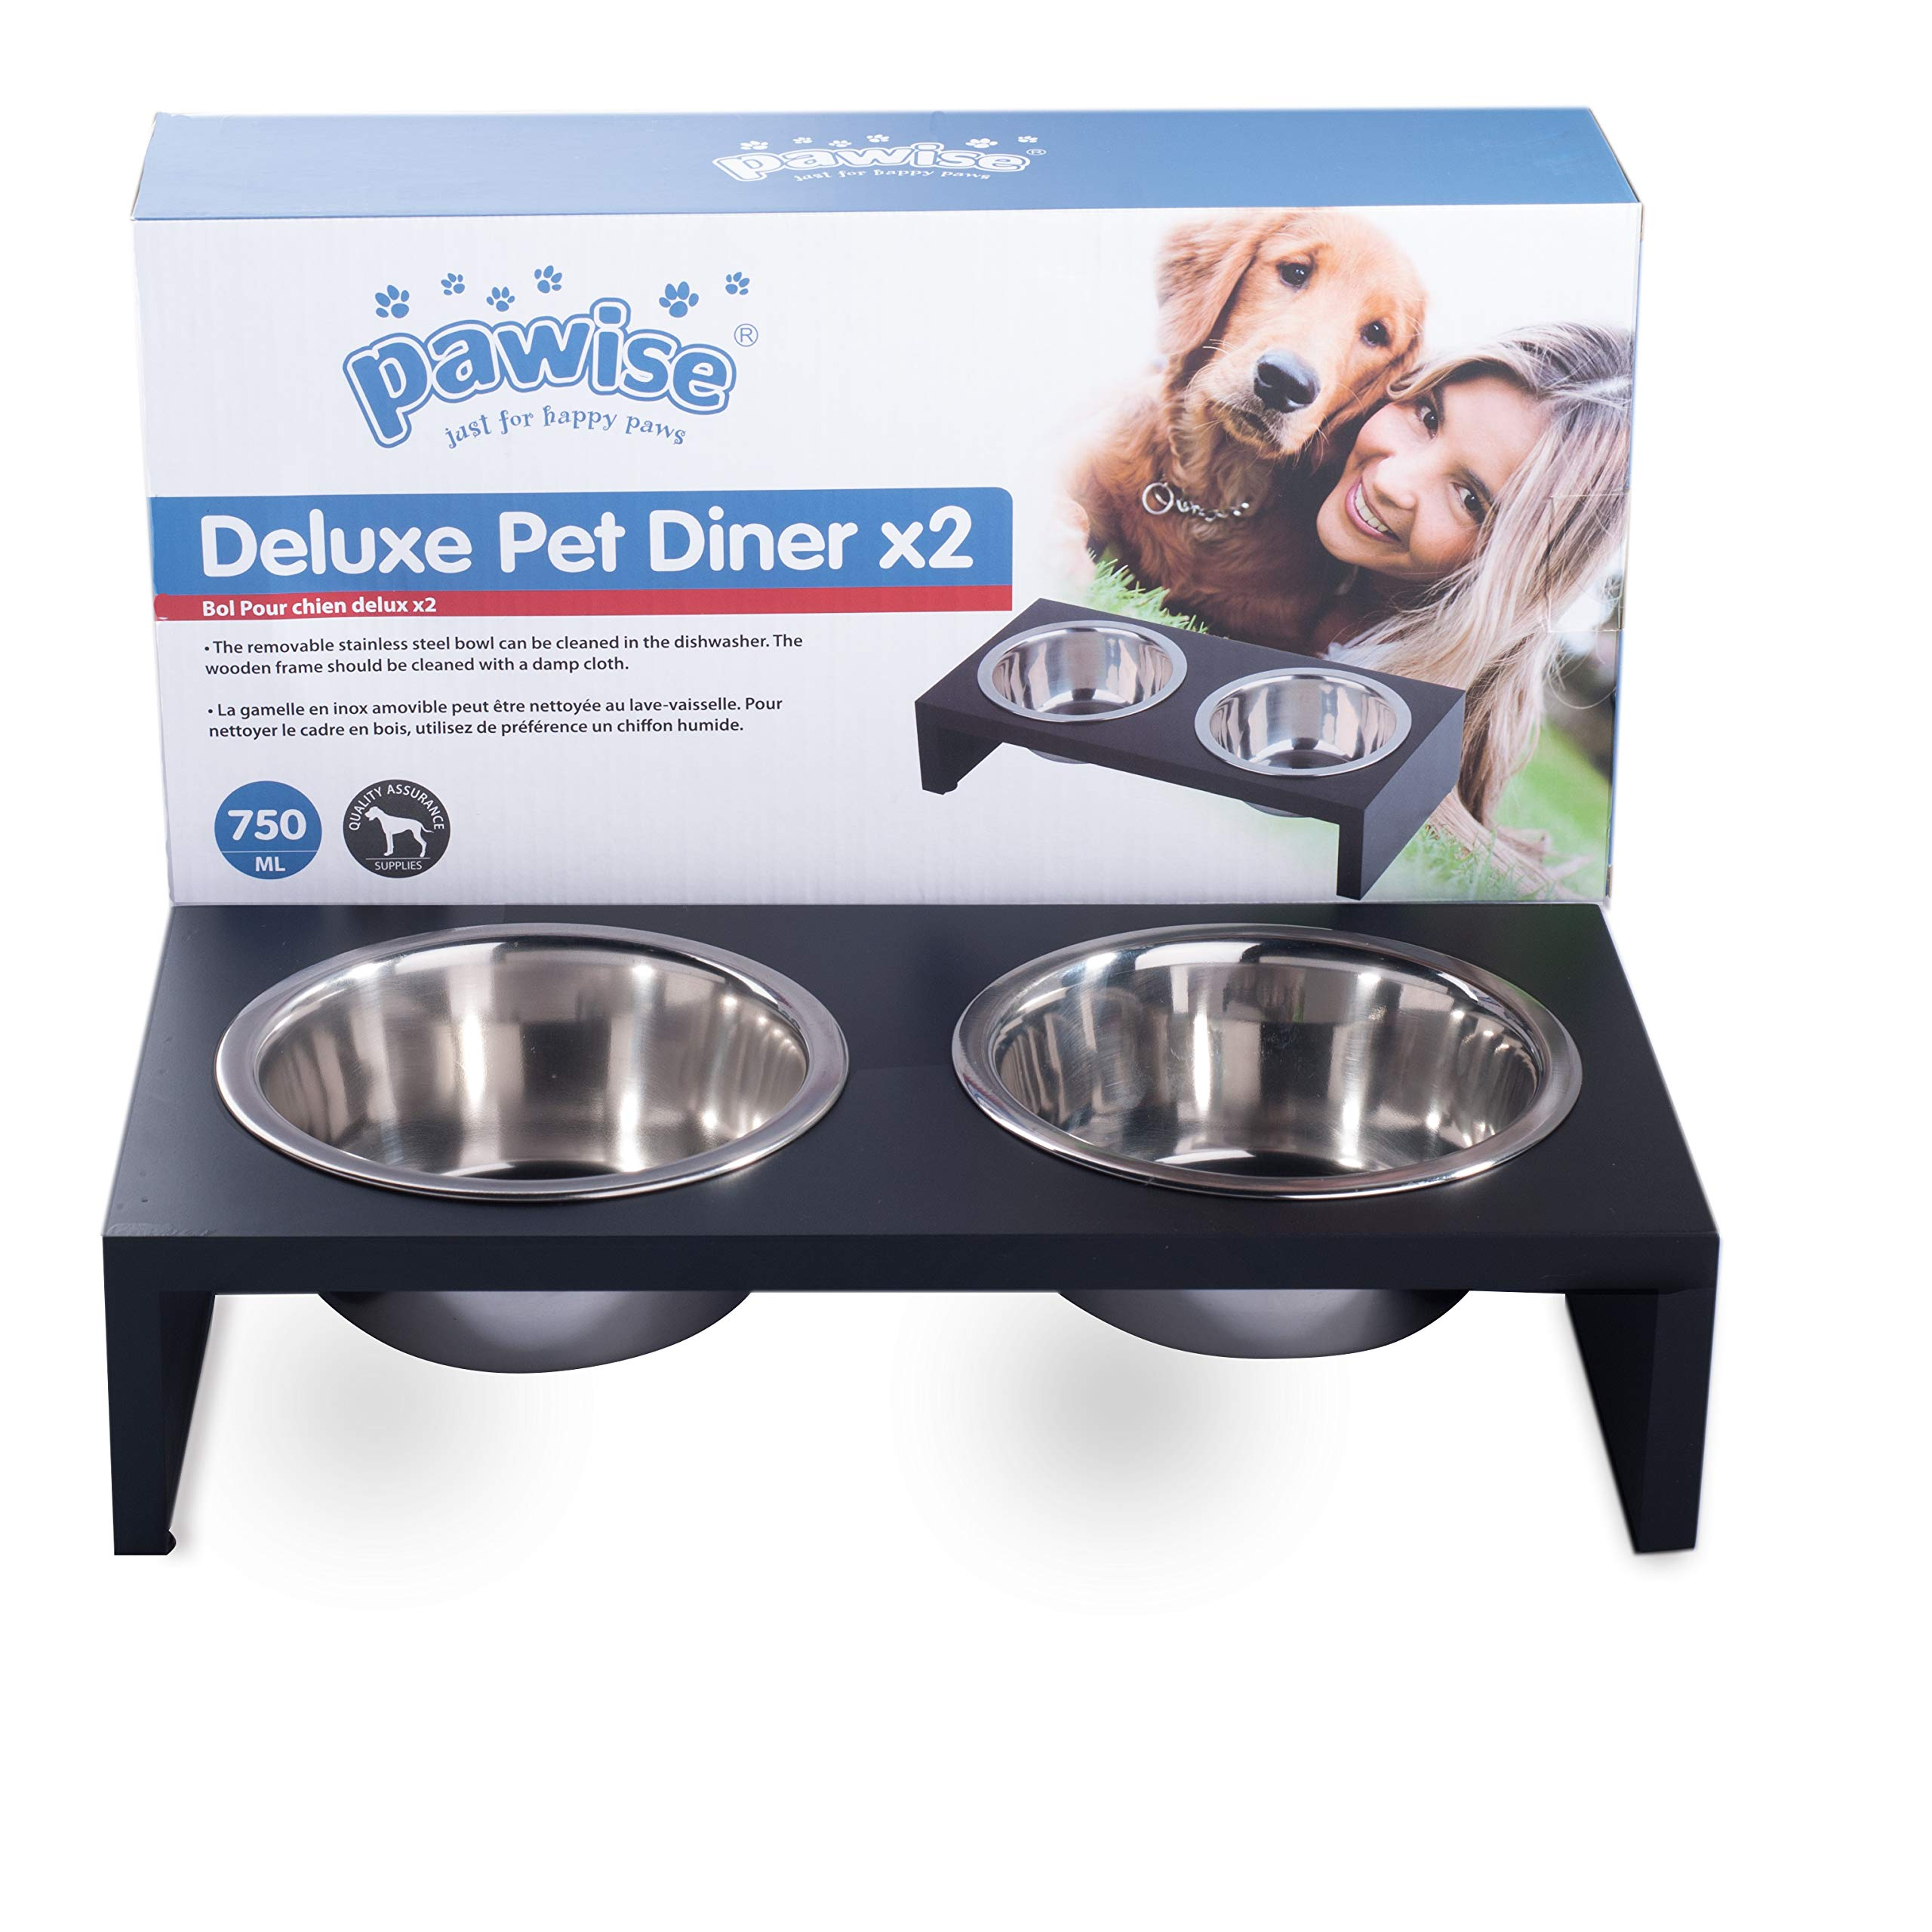 PAWISE Elevated Dog Bowl Raised Dog Feeder Stainless Steel Bowl Wooden Frame 750ml by PAWISE